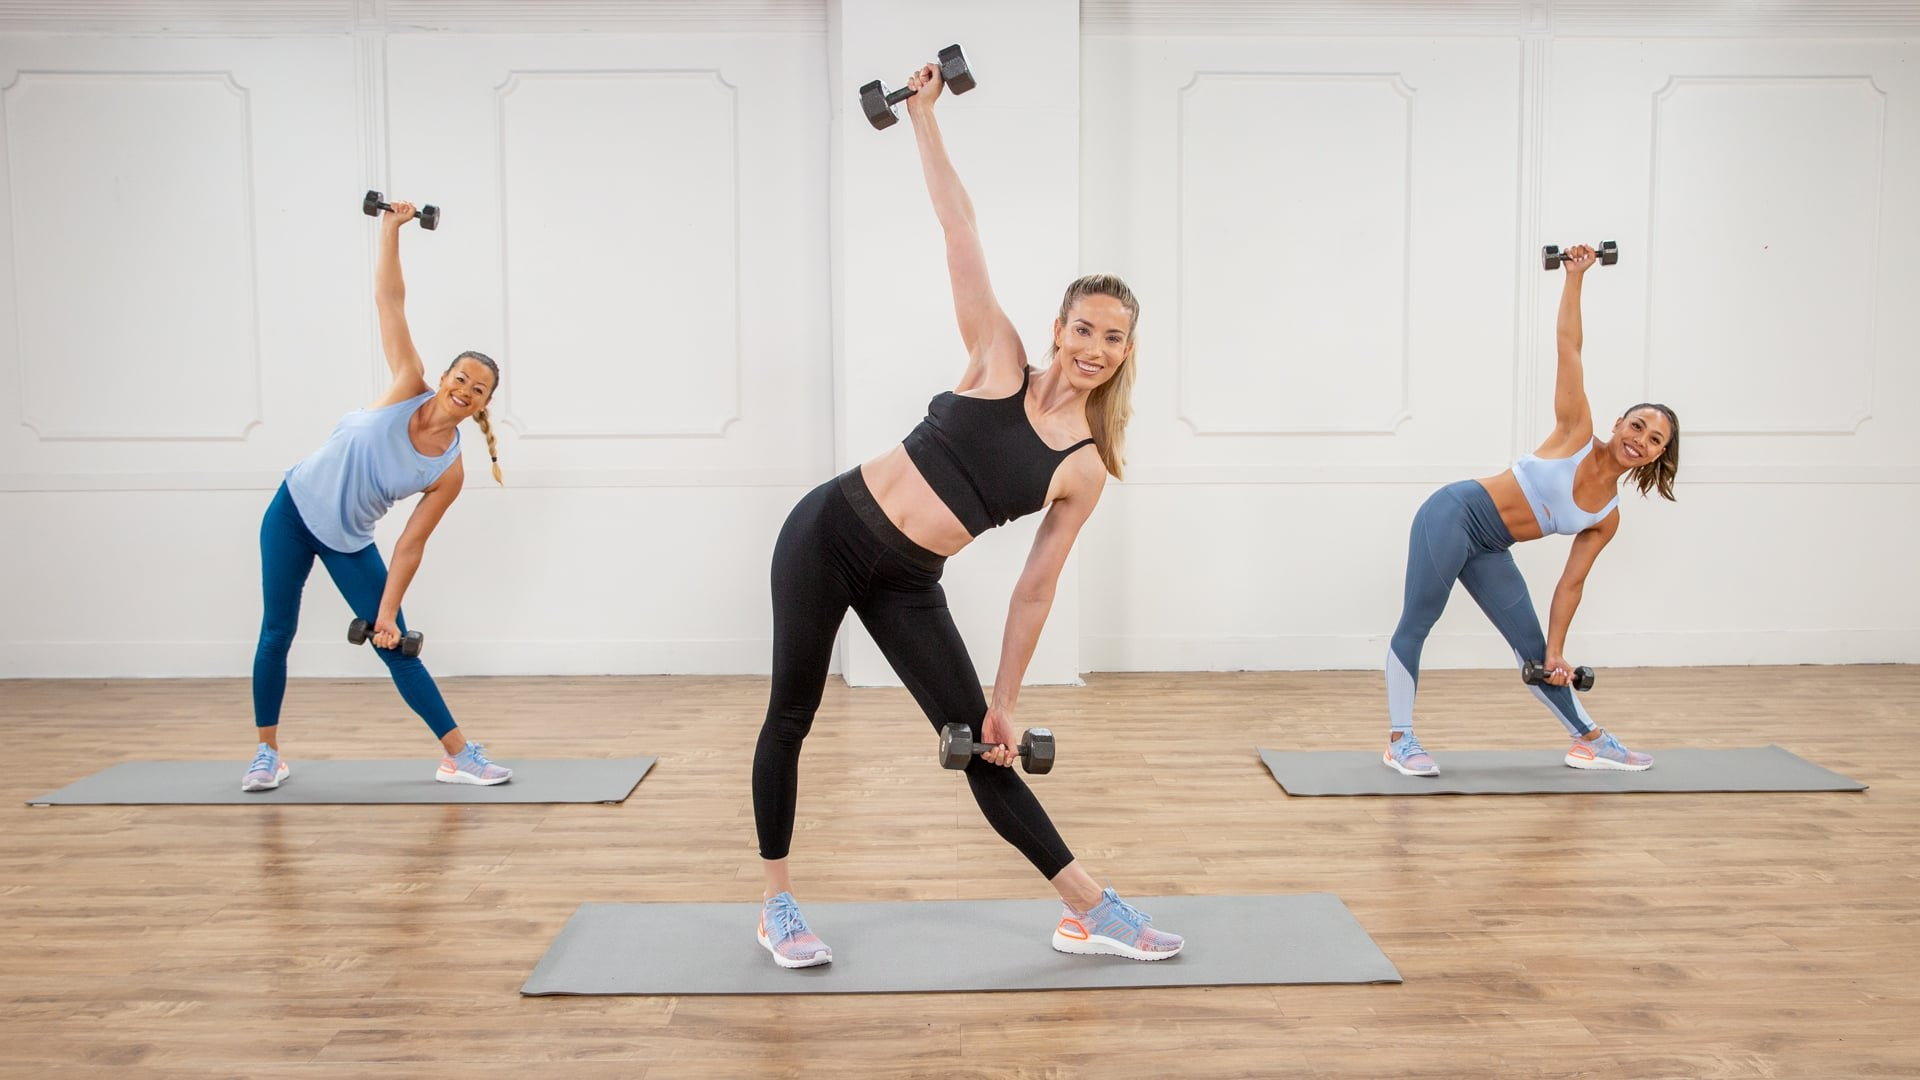 20-Minute Toned Arms and Abs Workout